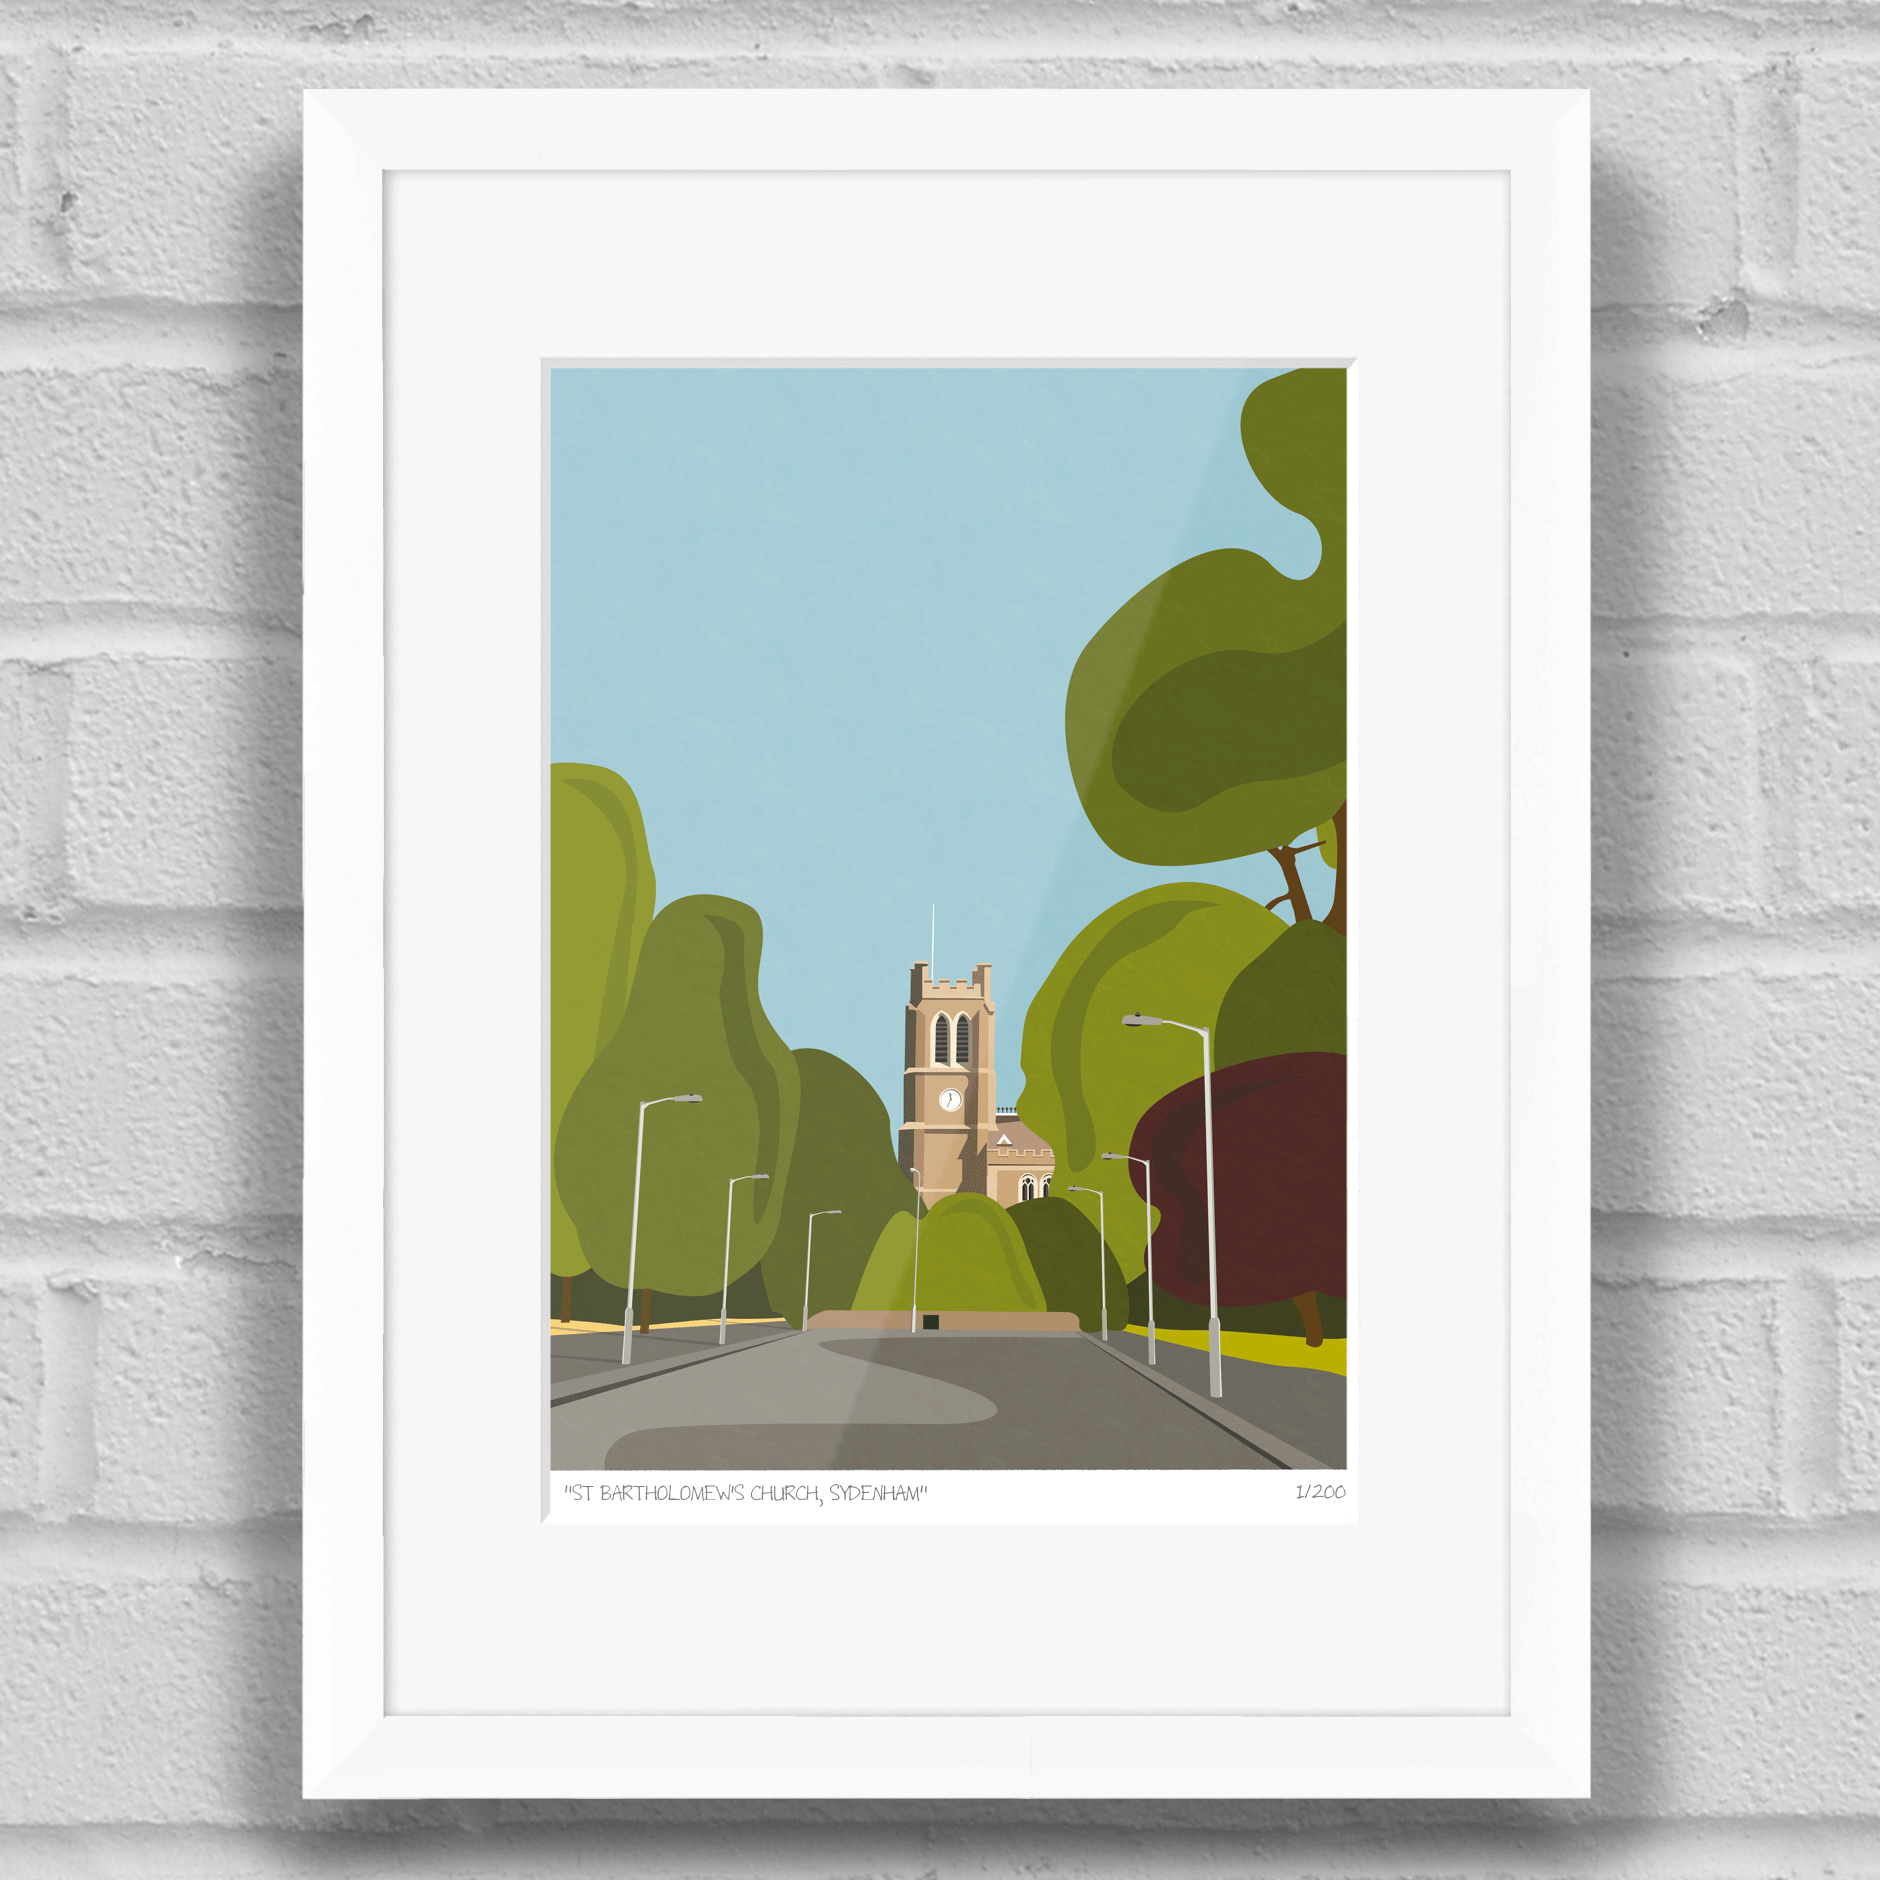 St bartholomews church sydenham crystal palace art prints st bartholomews church sydenham art poster print white frame jeuxipadfo Gallery